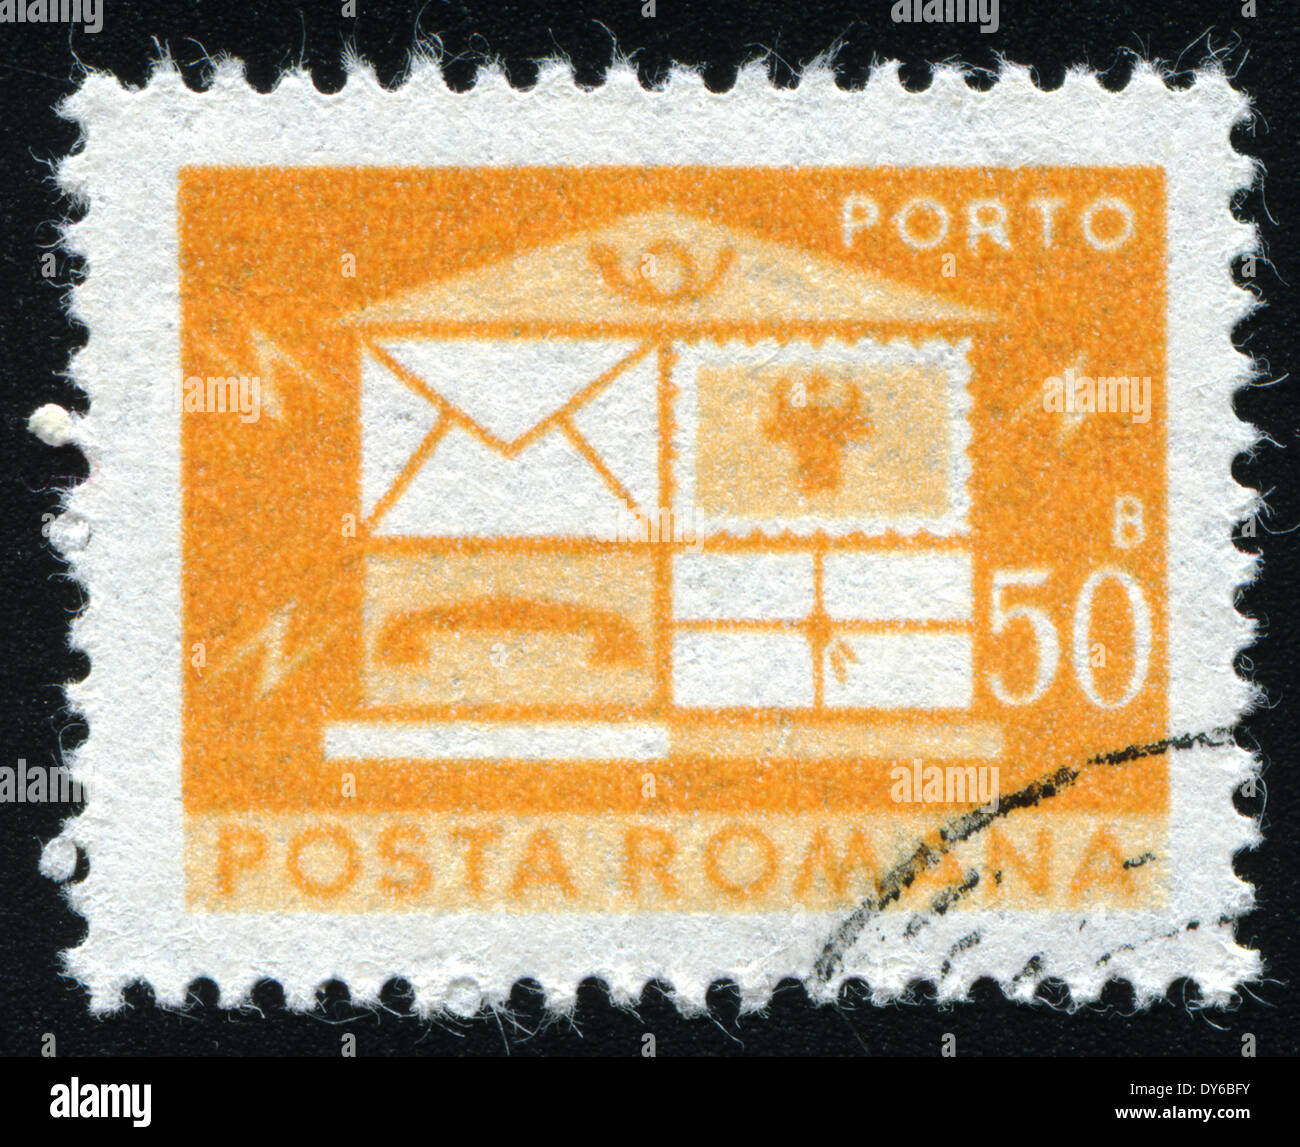 ROMANIA - CIRCA 1982: A stamp printed in the Romania, depicts the postal horn and postal car, circa 1982 - Stock Image